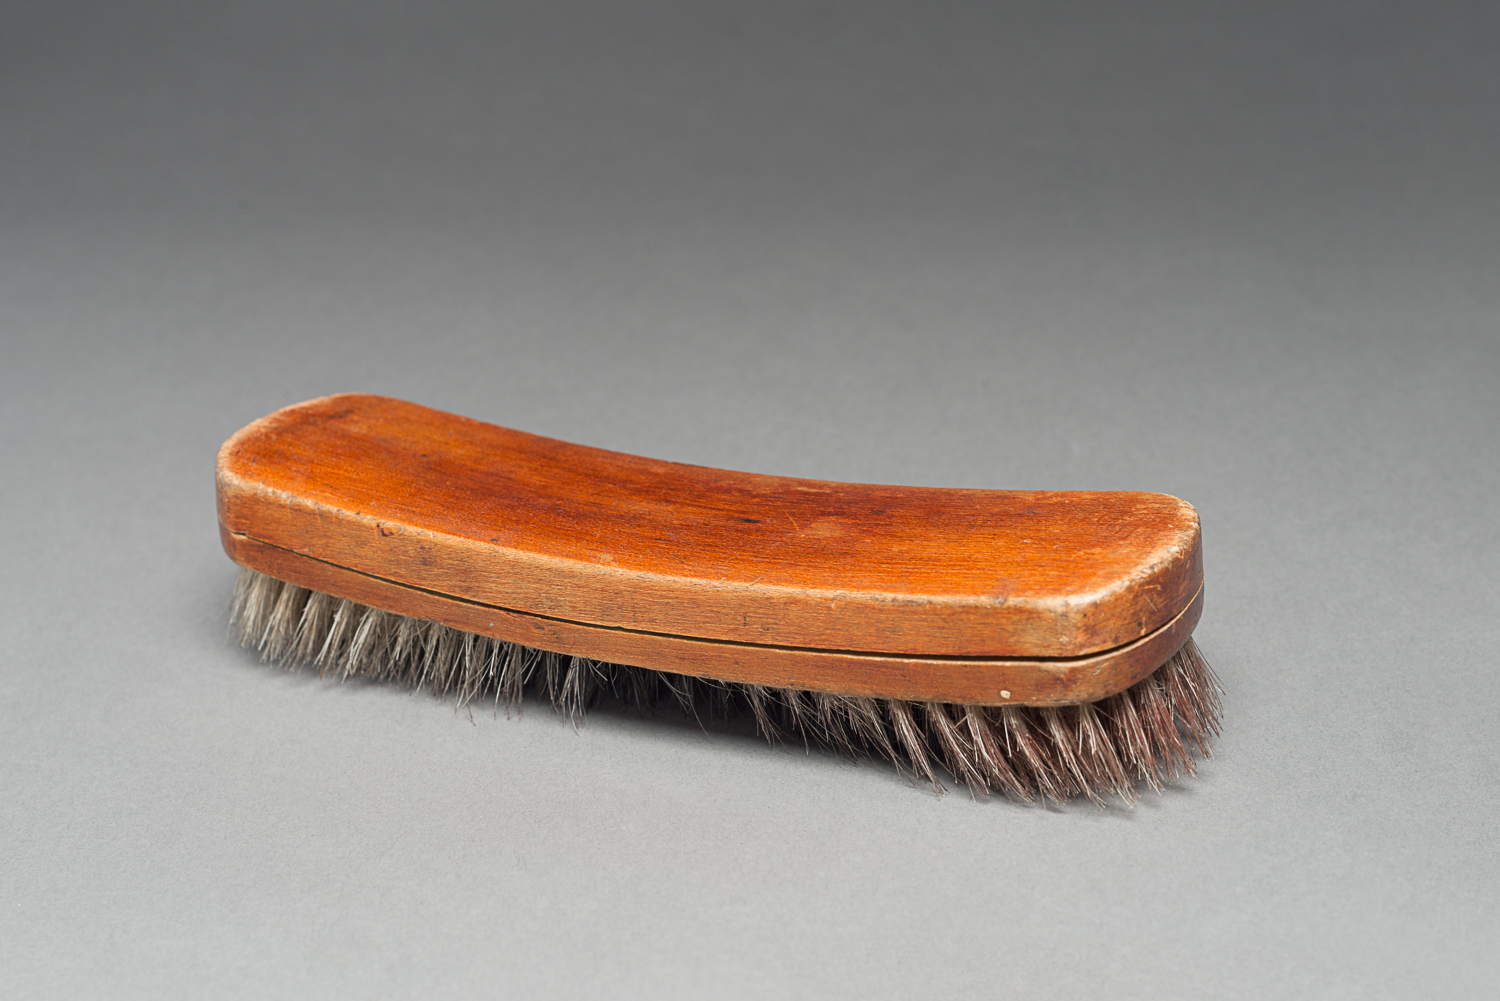 The shoe brush belonged to Chava Favor when she was imprisoned in a sub-camp of Mauthausen in Austria. (Photo: Peter Berra)